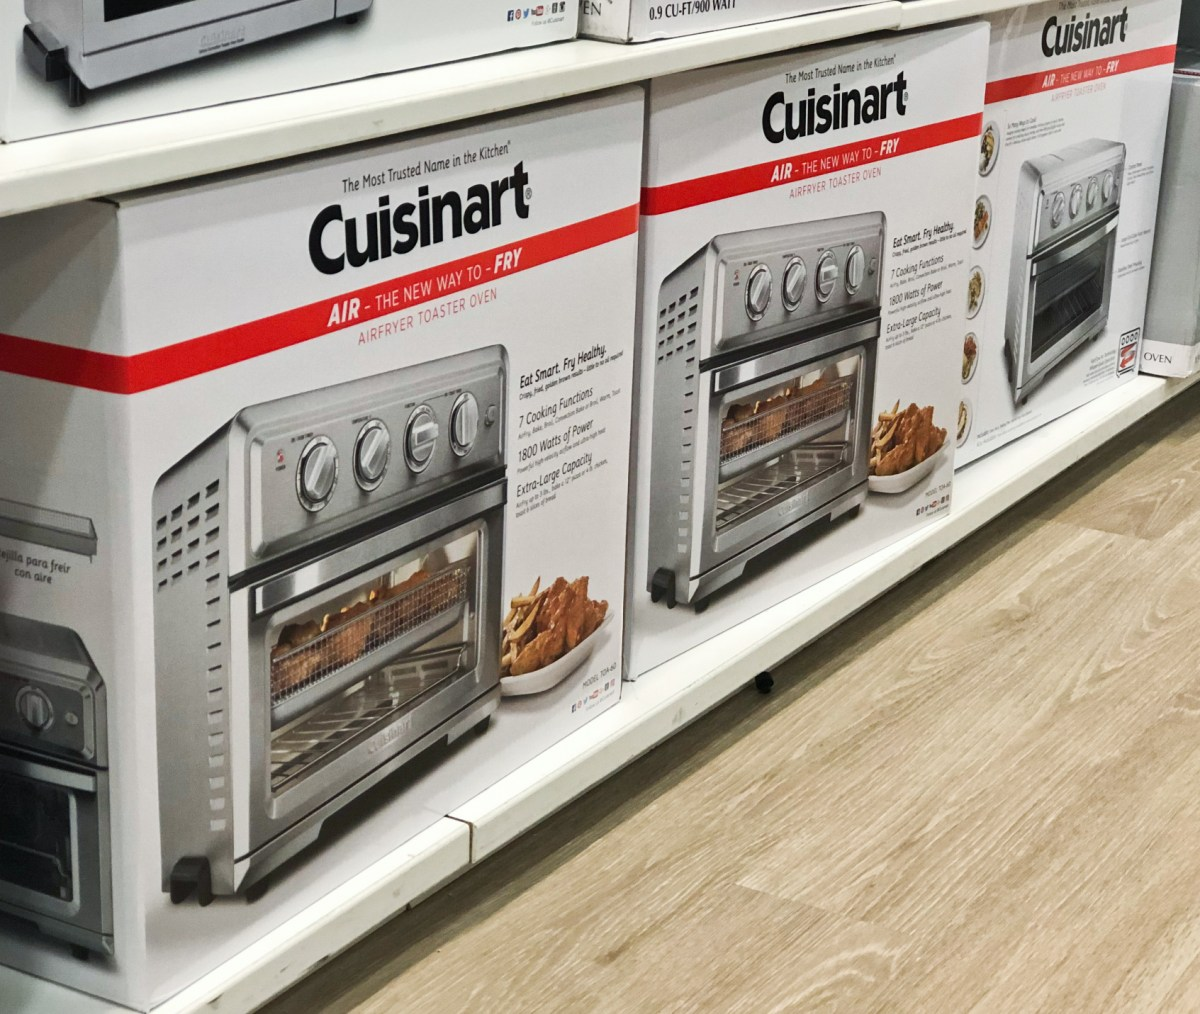 Cuisinart Air Fryer Oven Cuisinart Air Fryer Toaster Oven As Low As 132 99 Shipped